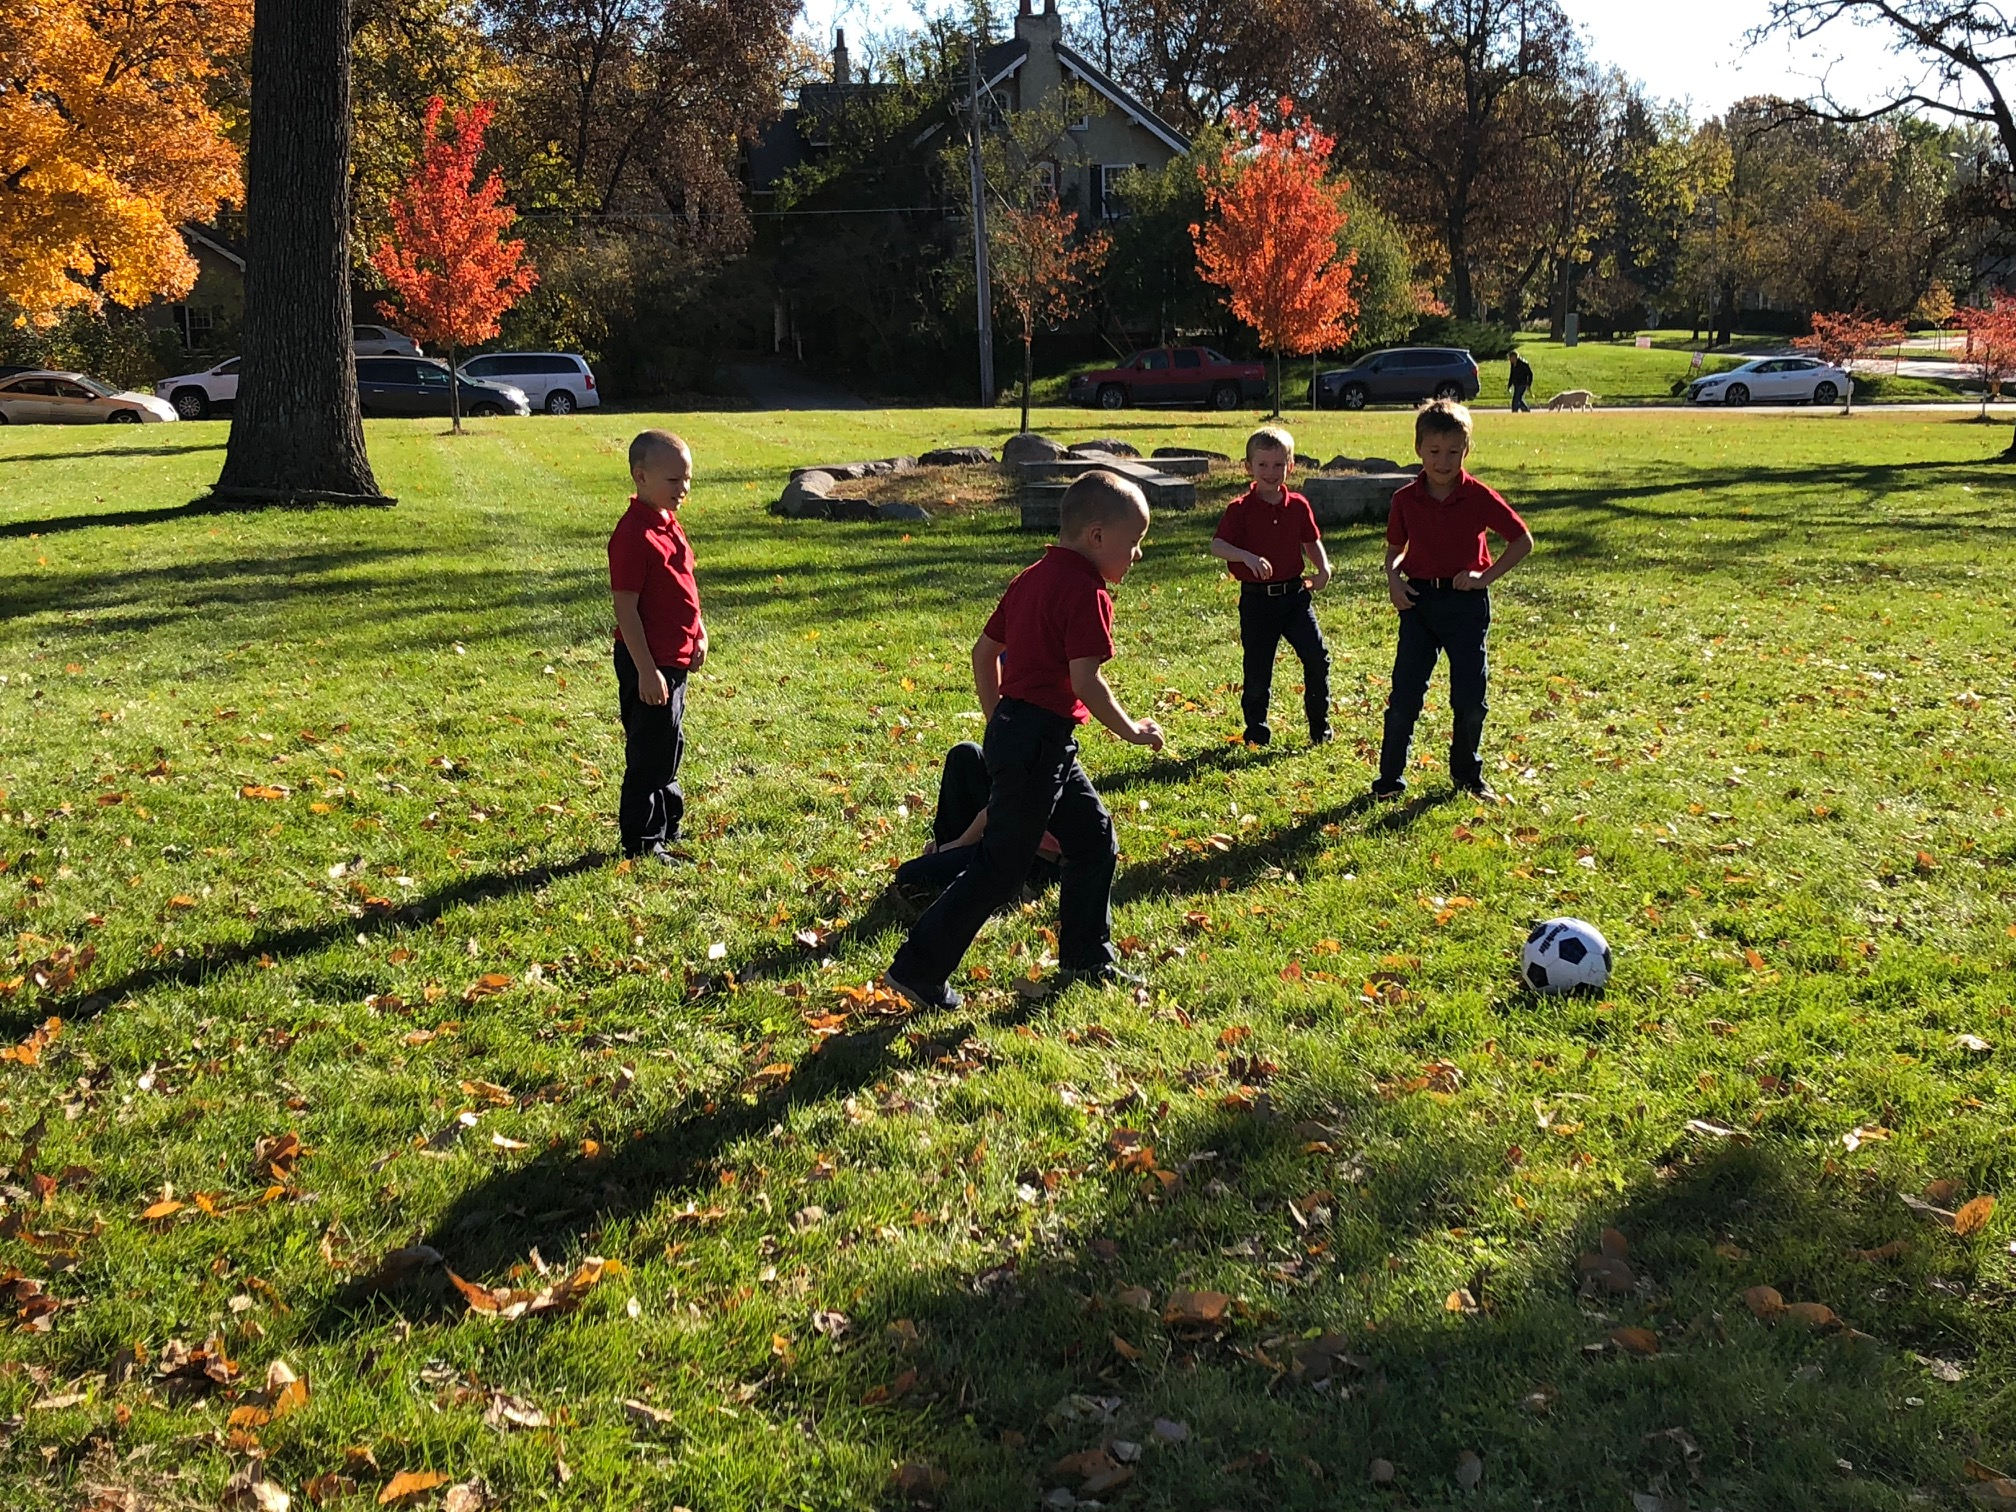 Children playing soccer at recess. STCA has nearly 2 hours of breaks for the children during the school day so that the children have time to exercise and enjoy the outdoors.